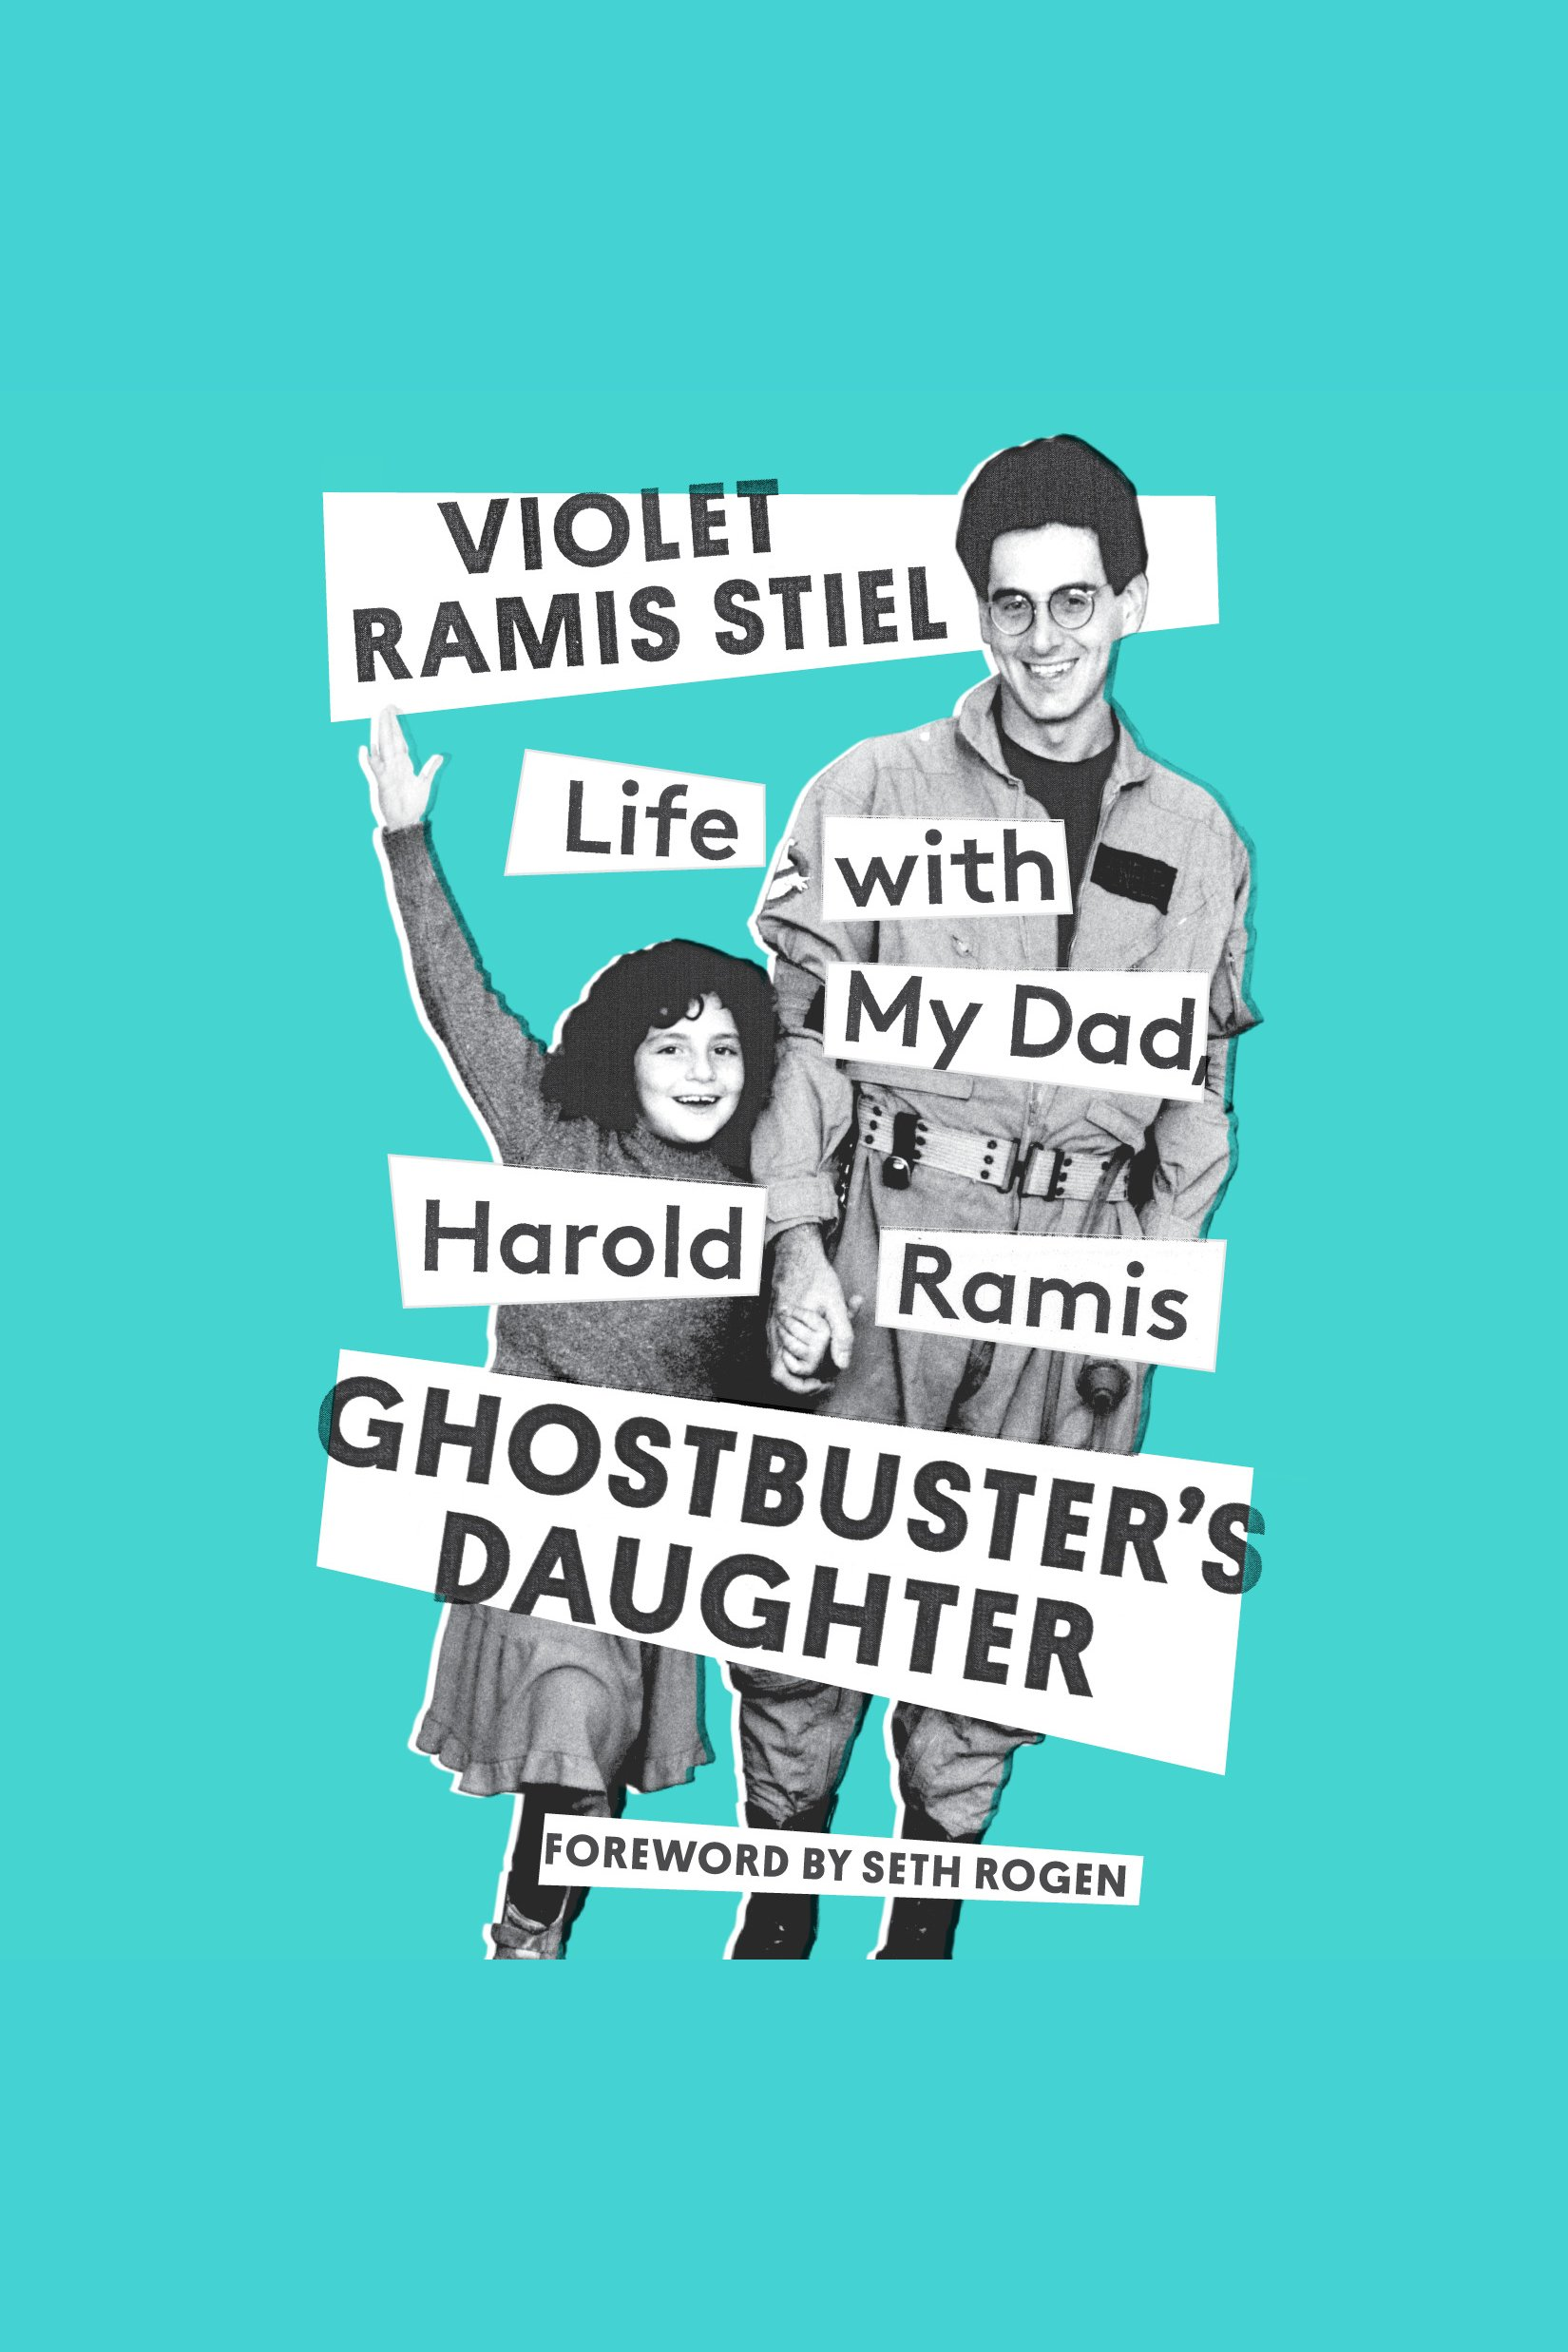 Ghostbuster's Daughter Life with My Dad, Harold Ramis